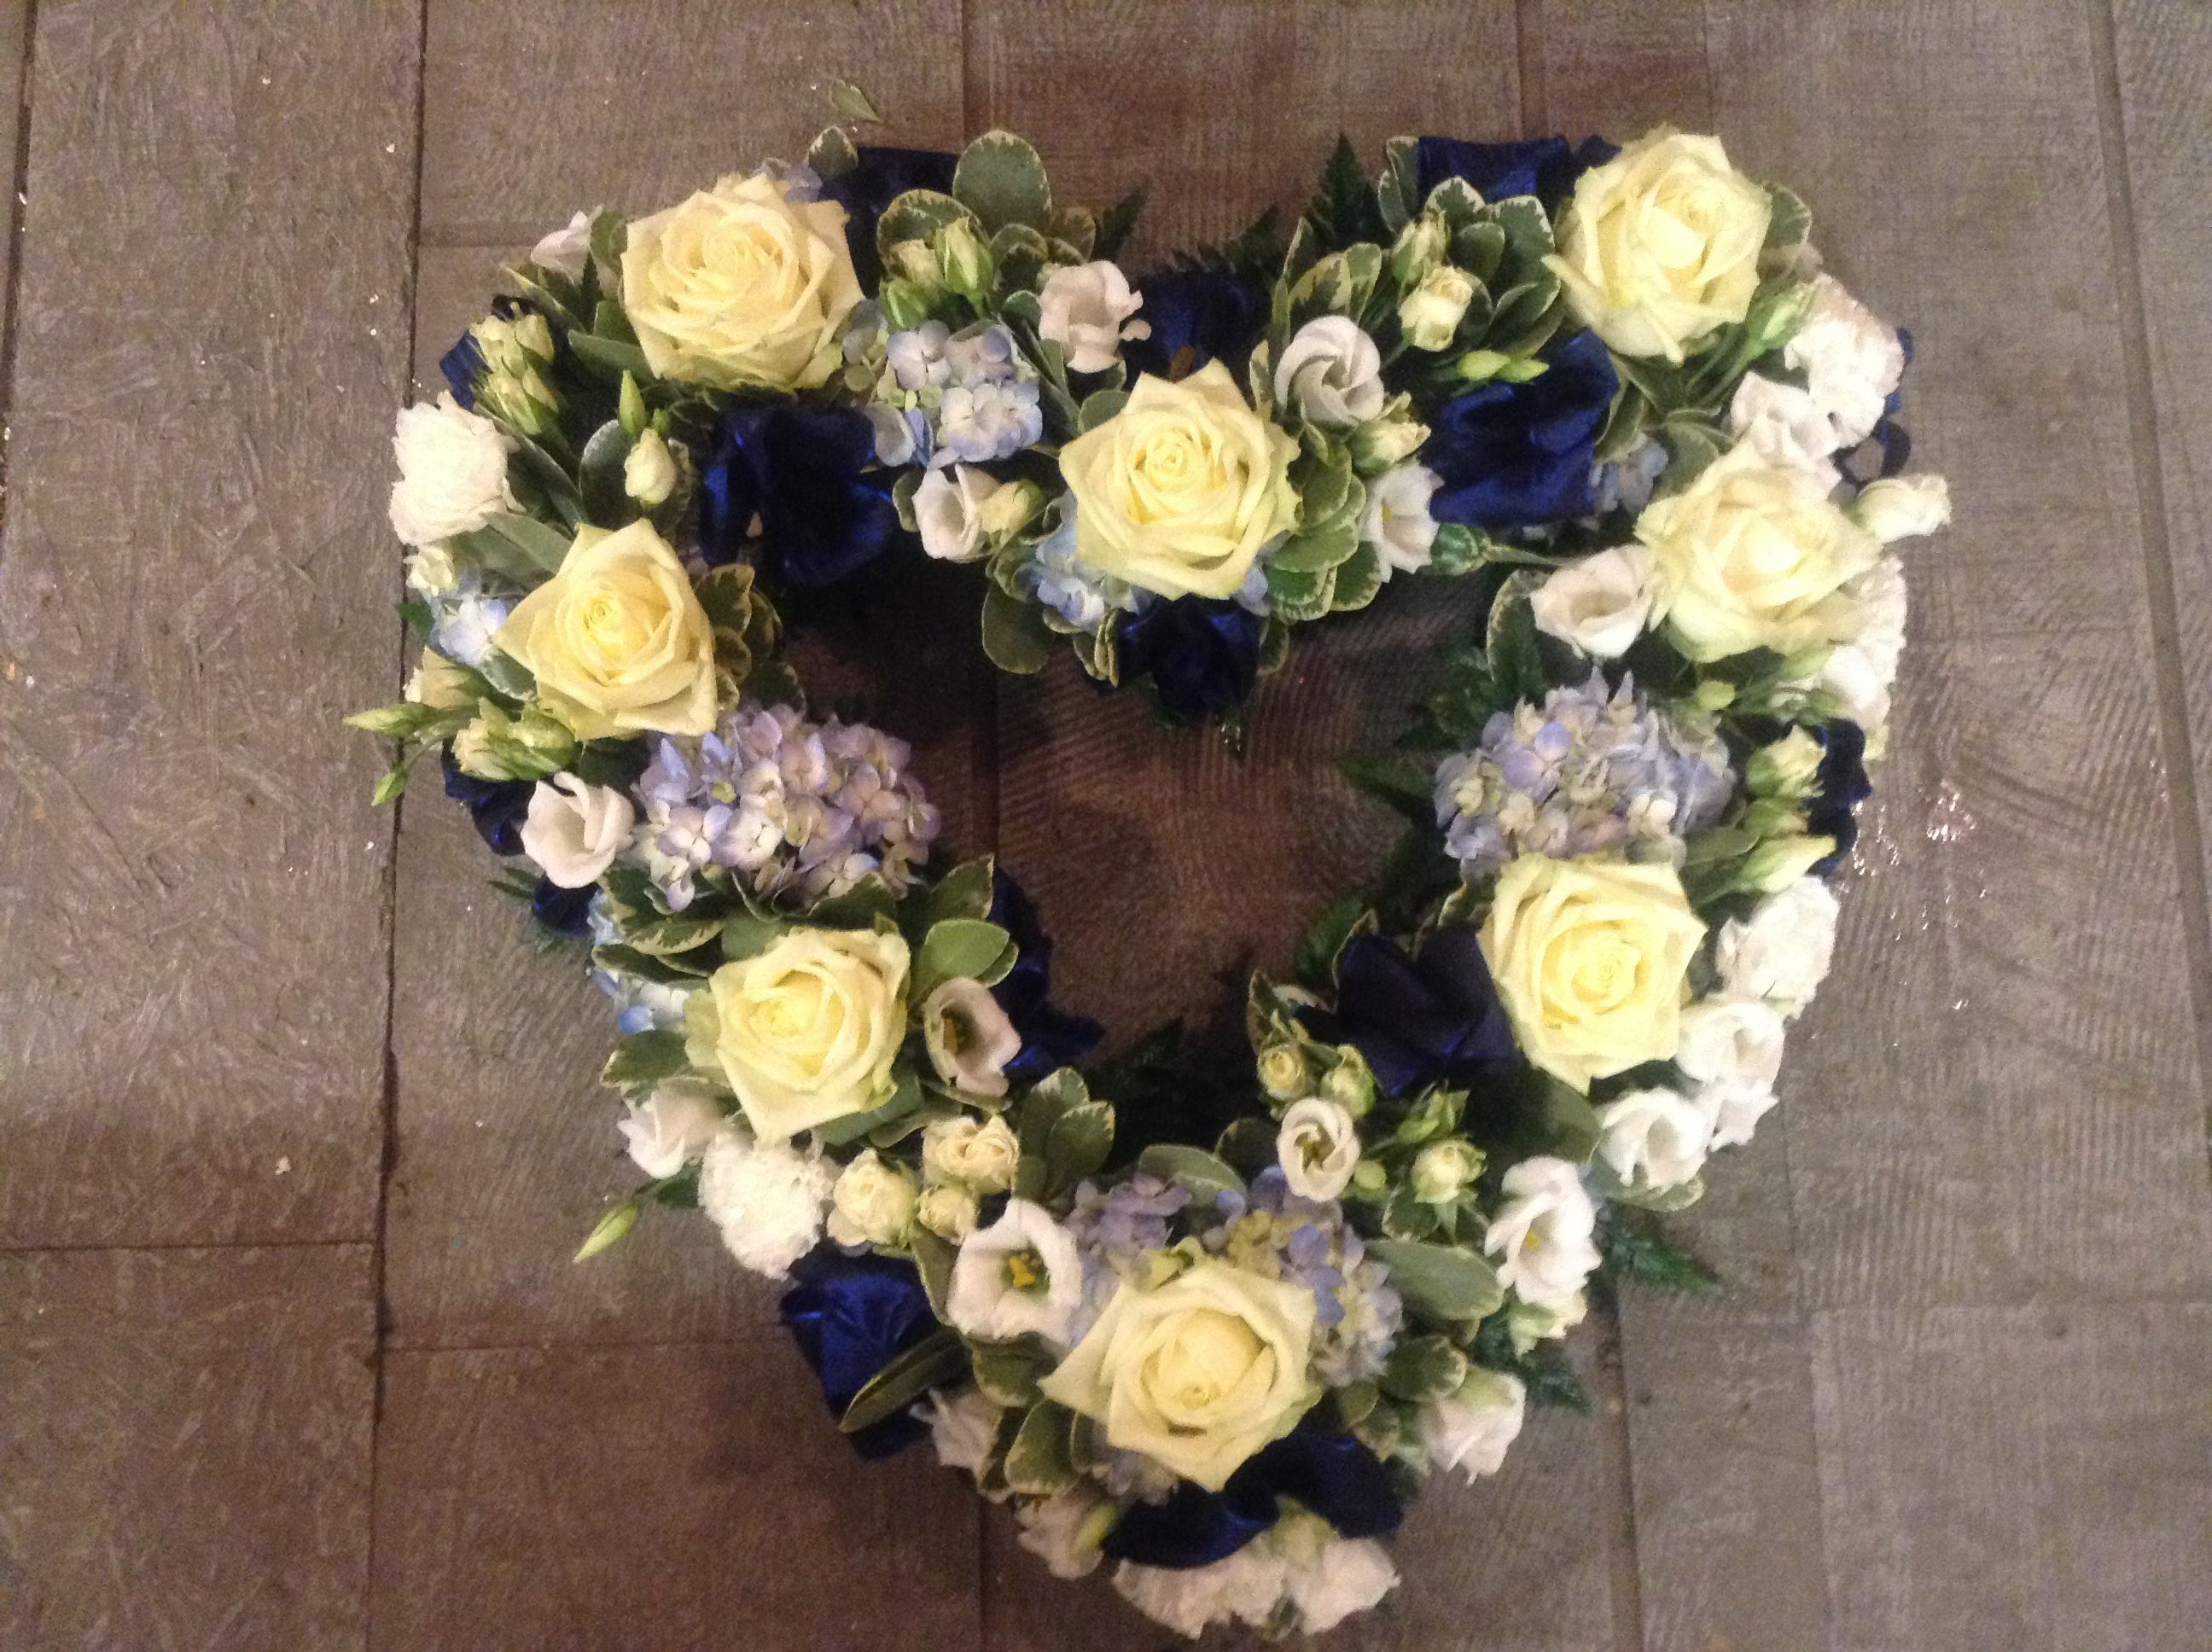 Funeral Flowers Heart Of Flowers Pale Blue Hydrangea Cream Roses Navy Silk Ribbon Funeral Flowers Pale Blue Hydrangea Blue Hydrangea